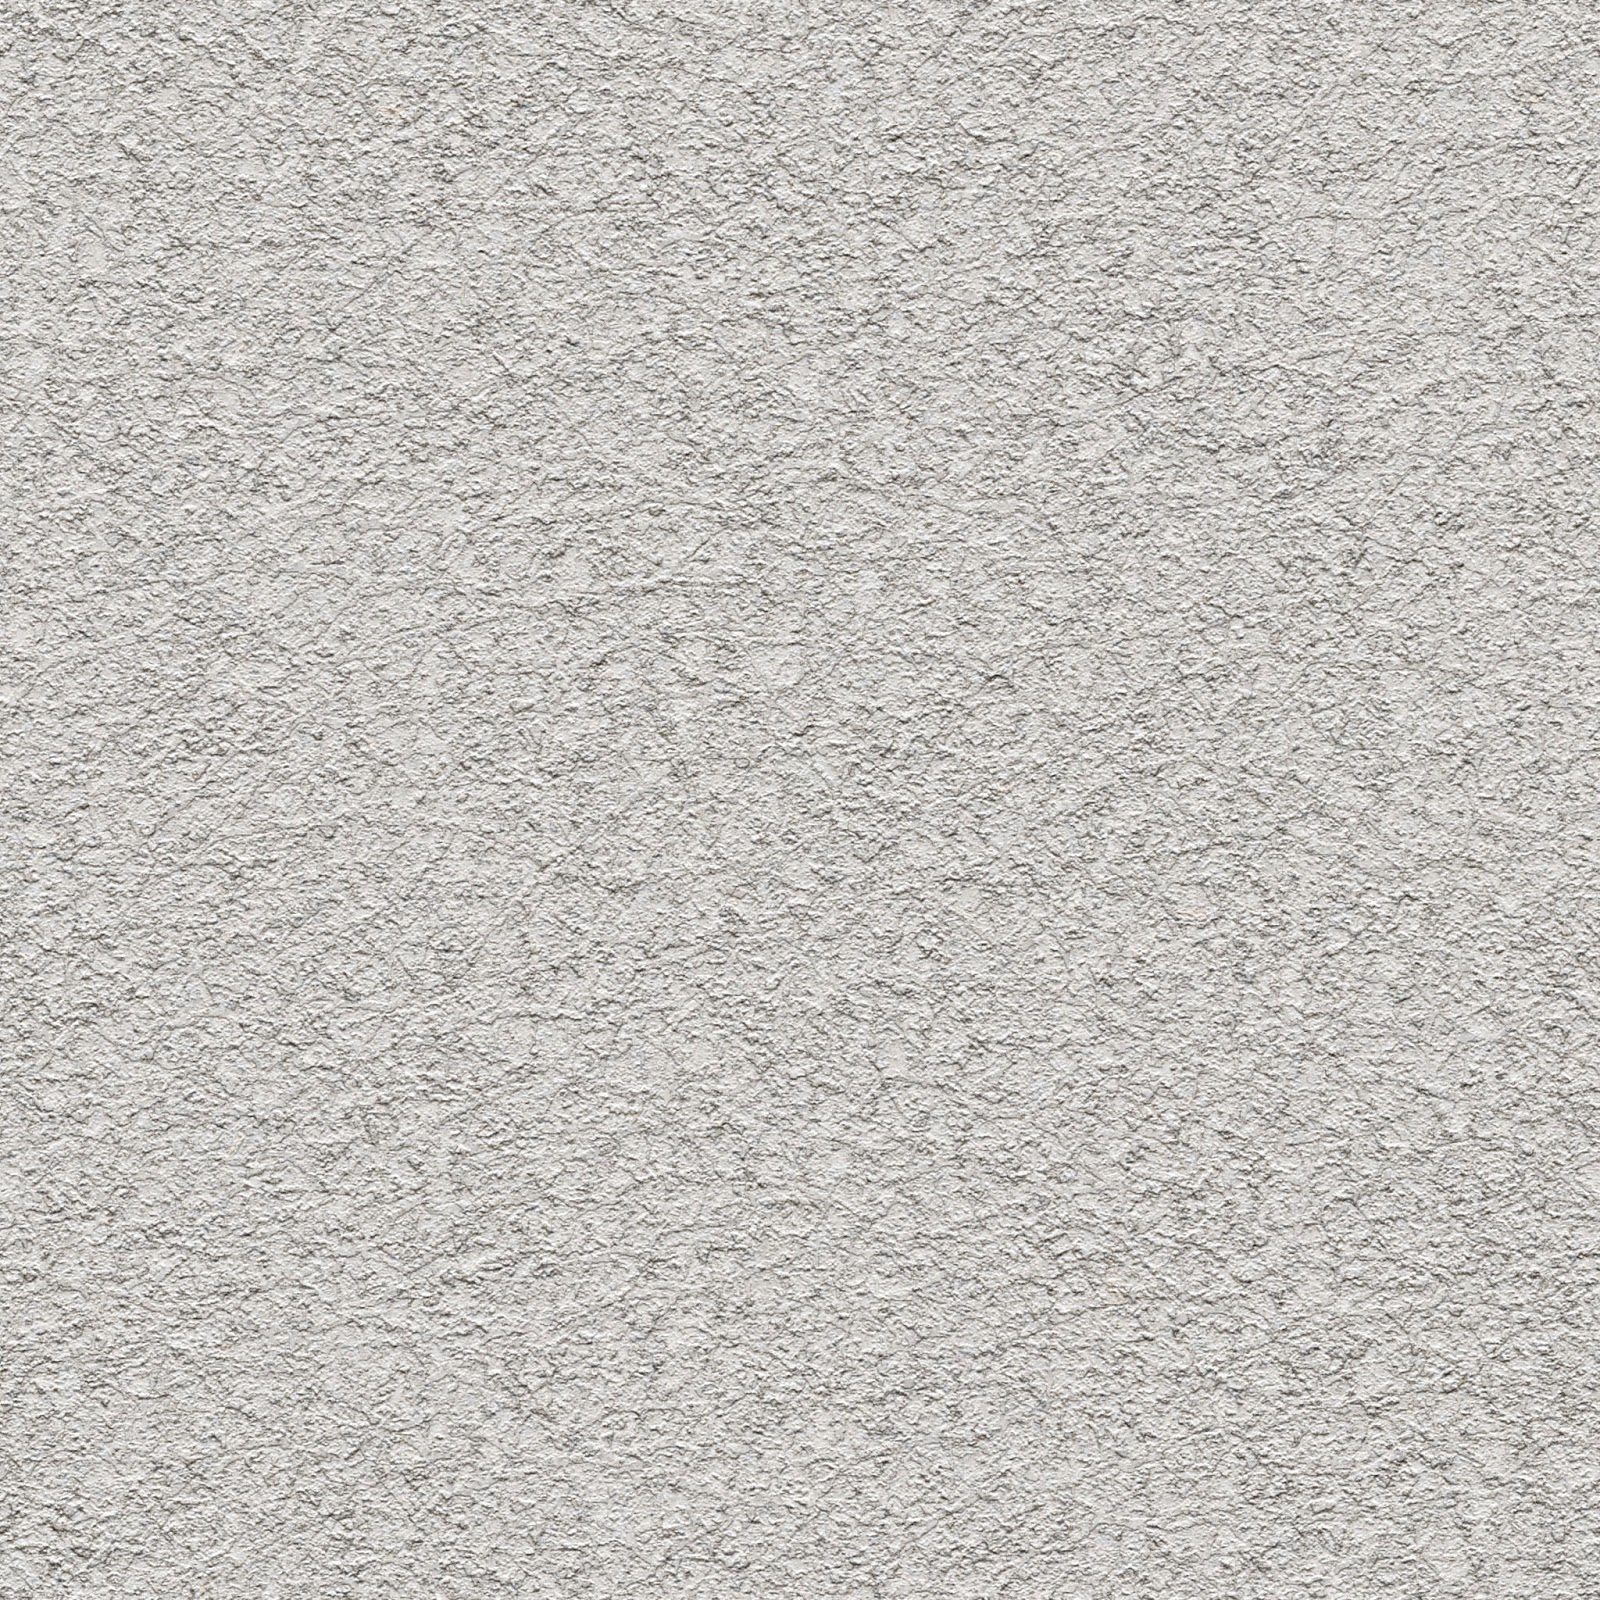 Rough stucco white dirty paint streaky plaster fine detail wall april 2014 texture seamless tileable